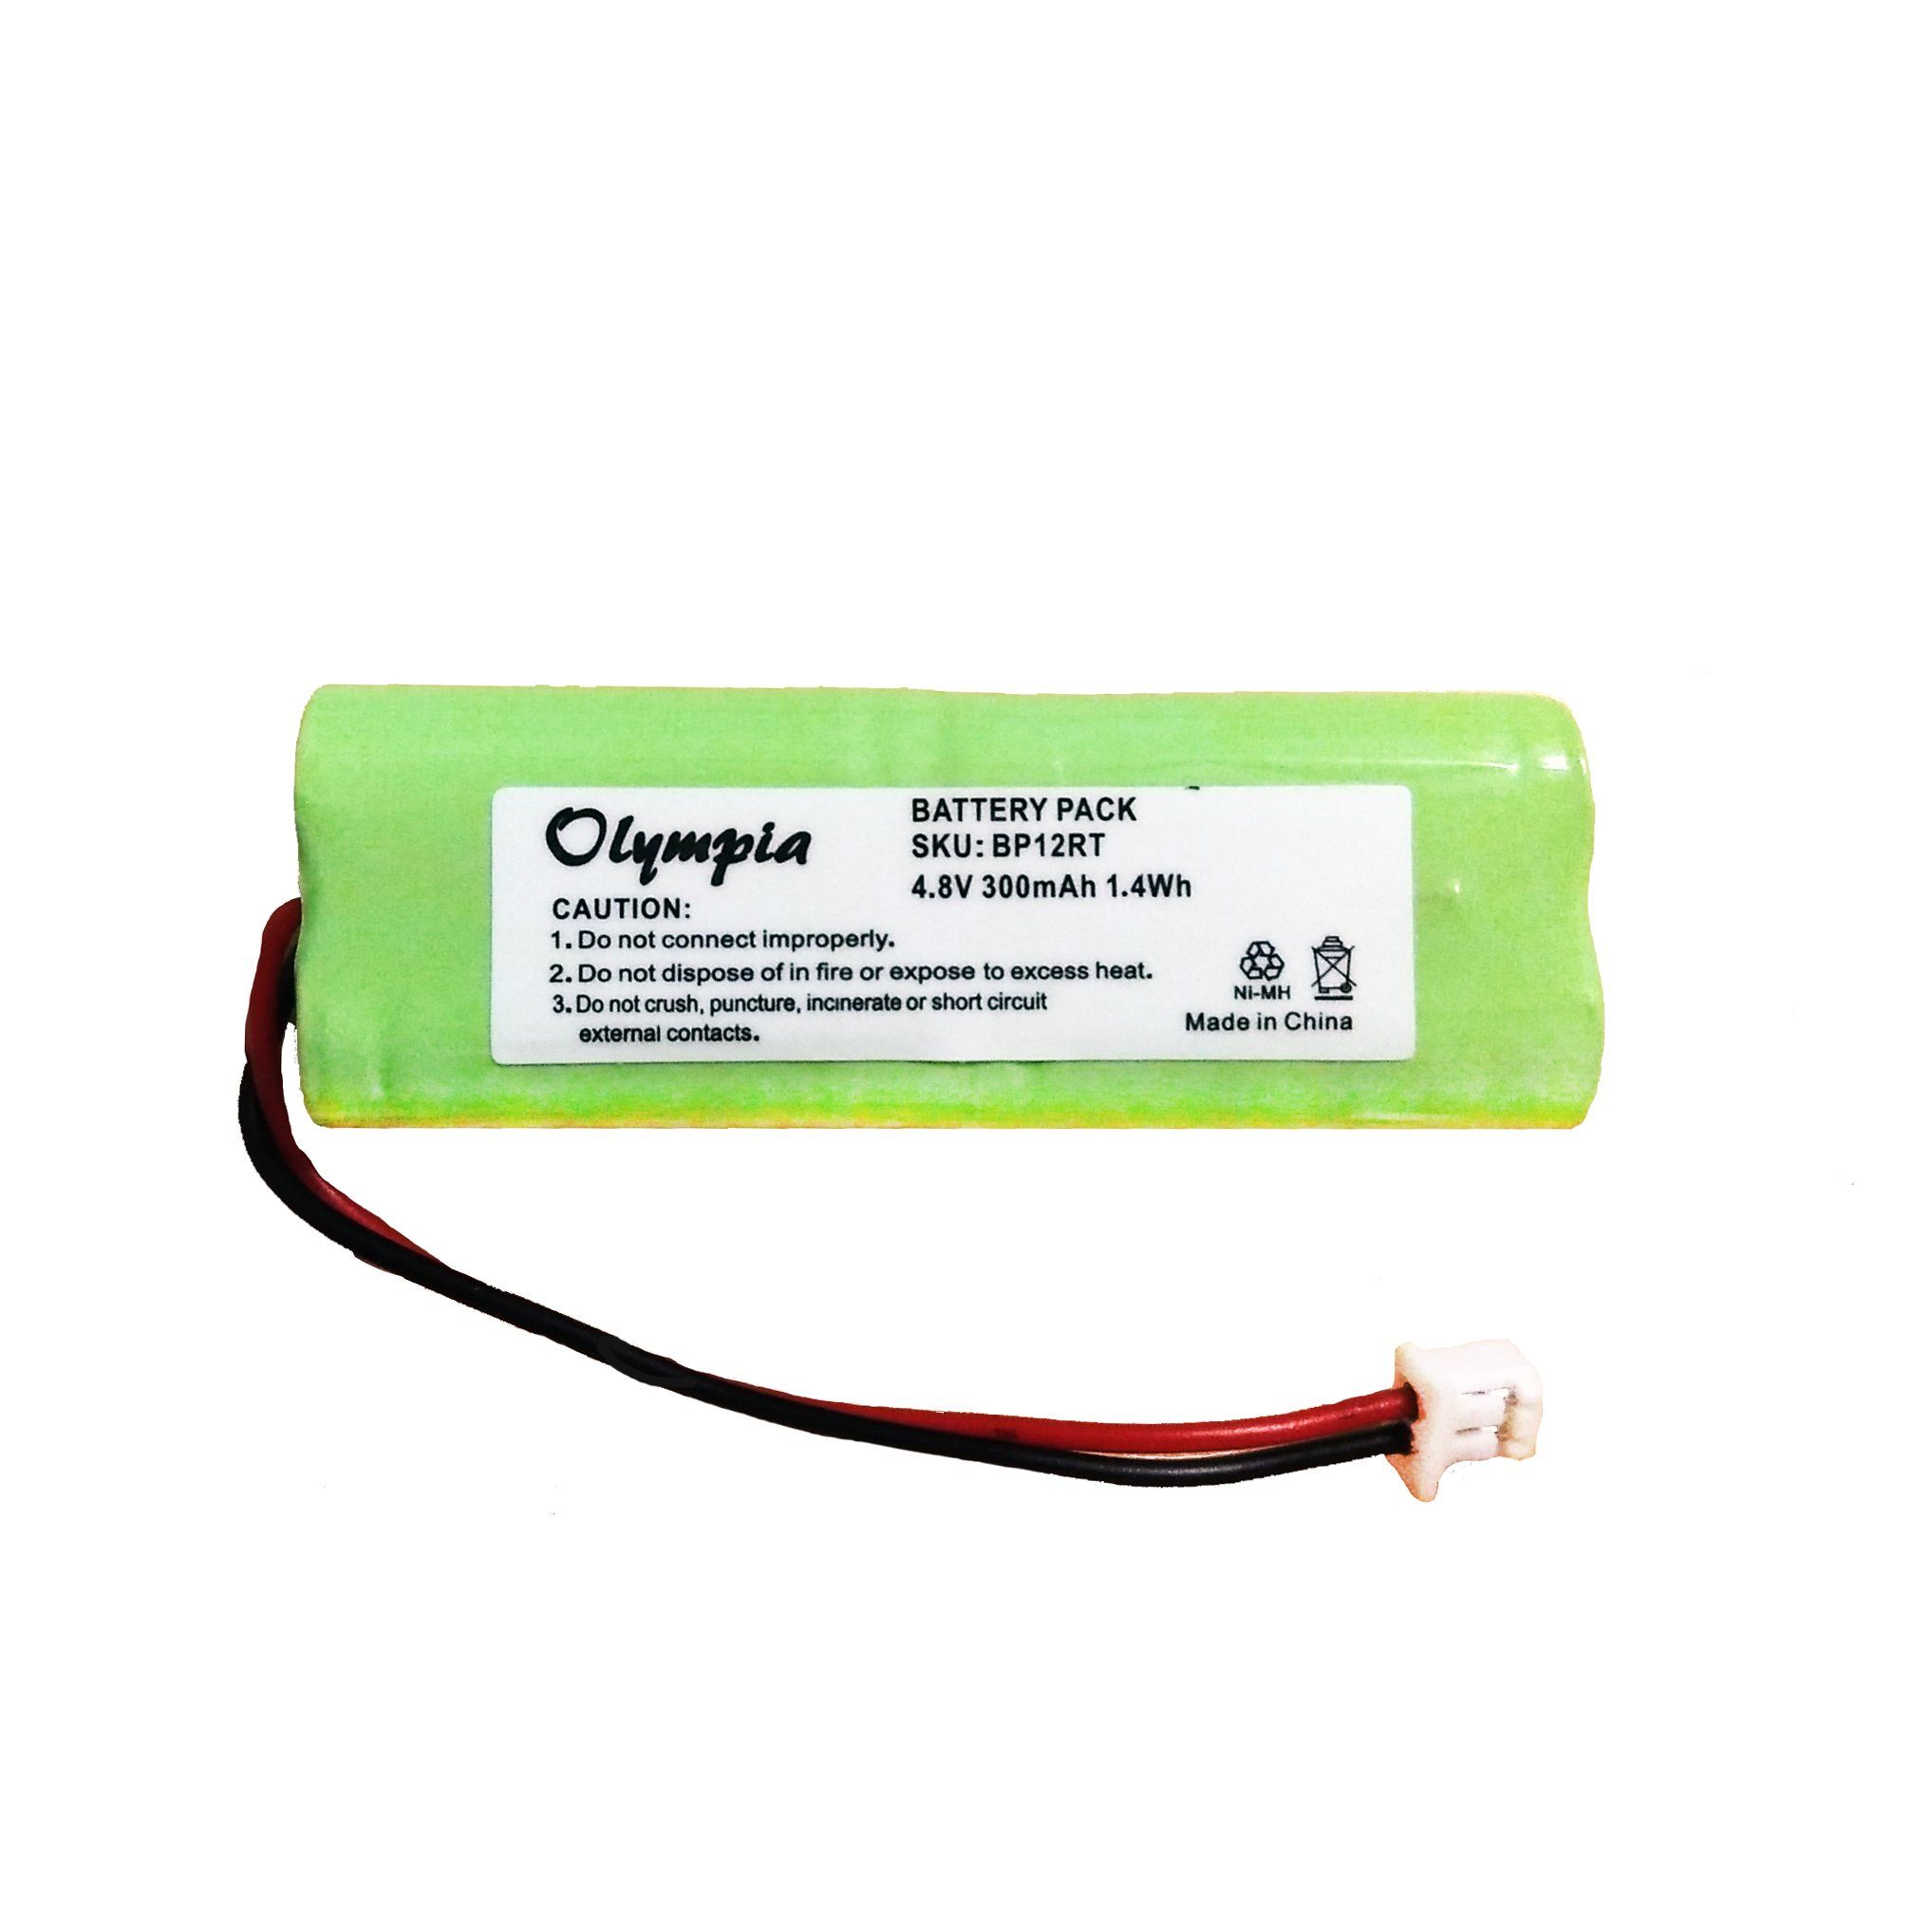 2200 2000200NC 1100NC 7100H 1800 302M 1600 Battery for Dogtra Transmitter 175NCP 1902NCP 1700 200NCP 7002M 7102 2000B 300M 2000T 202NCP 1500 1900 1200 200NC 7000M 7100 282NCP 7102H 1900NCP 280NCP